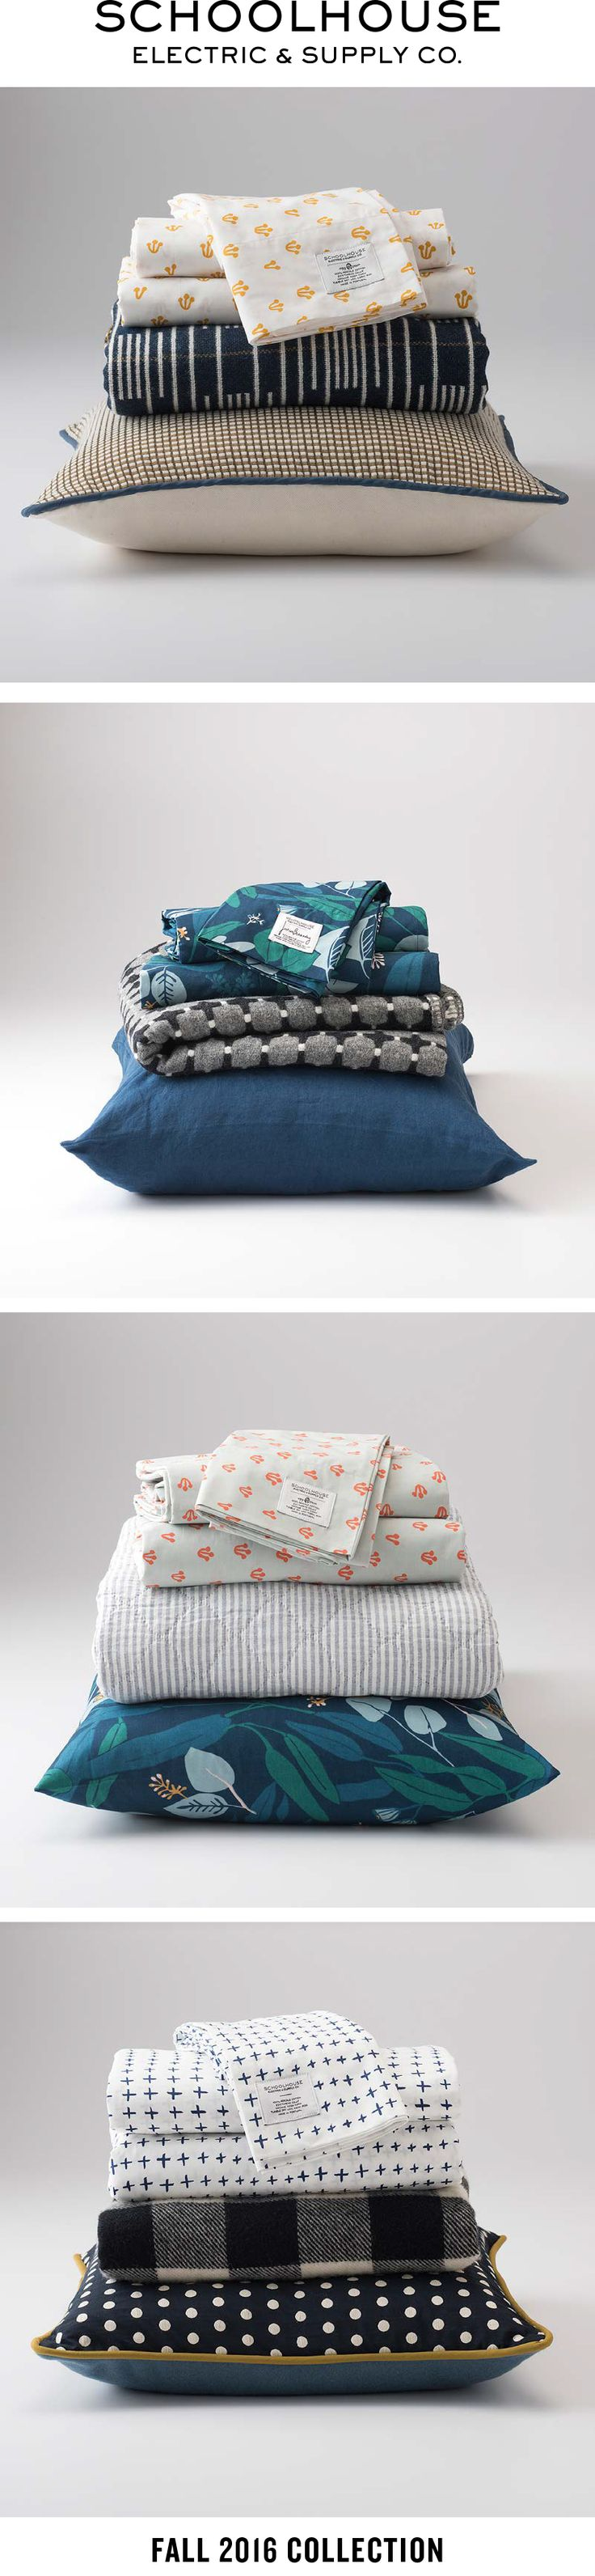 Mix & match bedding, throws and pillows | Shop the new collection by Schoolhouse Electric